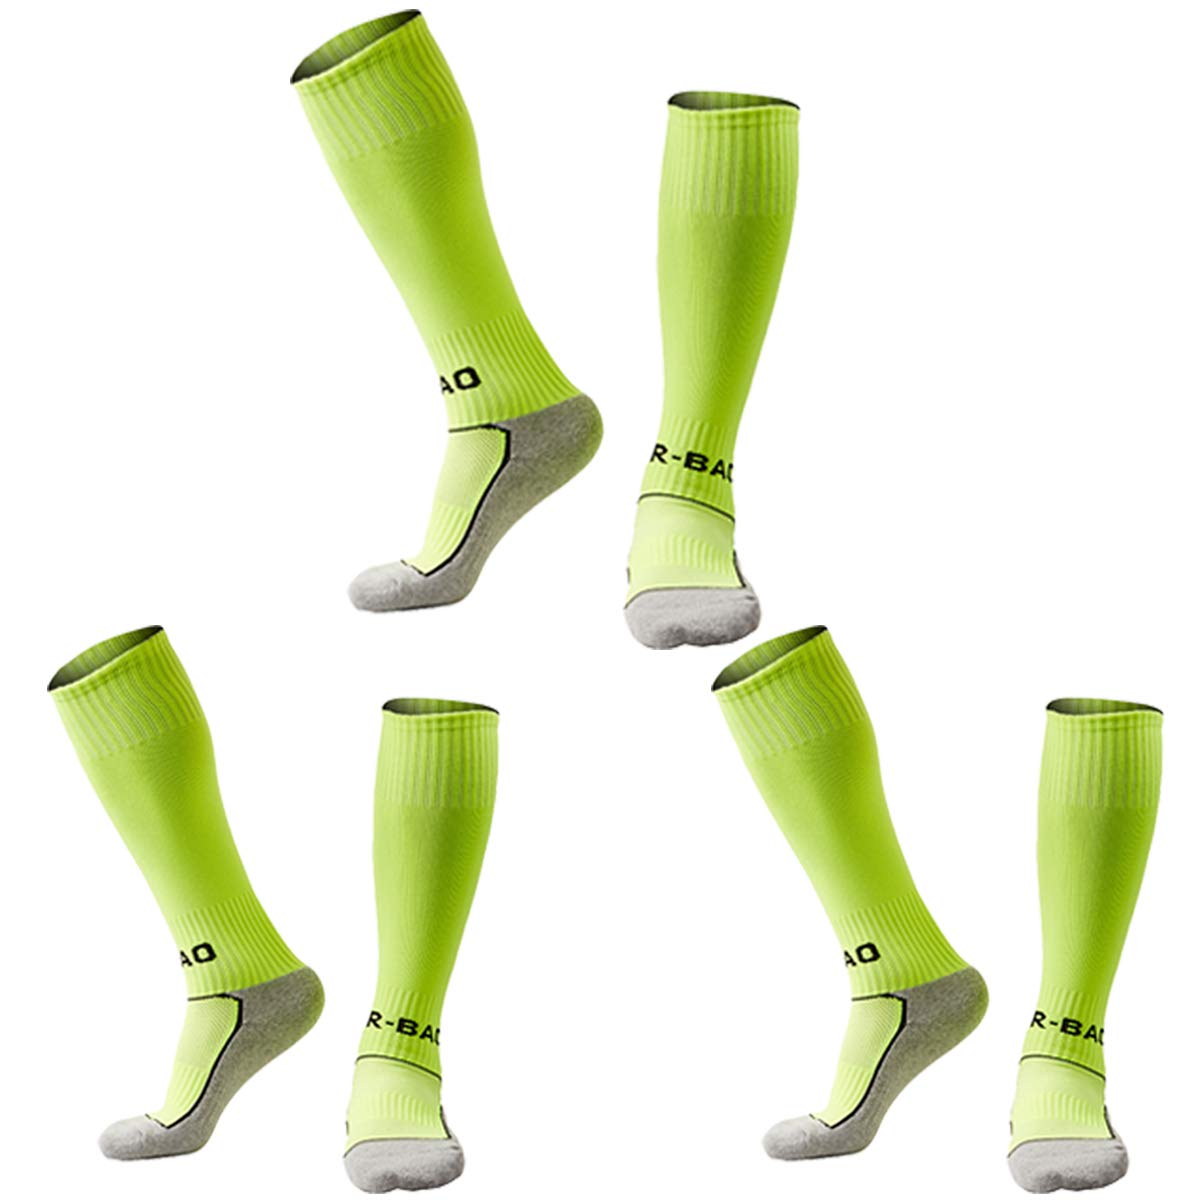 Kids Soccer Socks 5 Pack / 1 Pack Knee High Tube Socks Towel Bottom Pressure Football Socks (4-13 Years Little Kid/Big Kid)